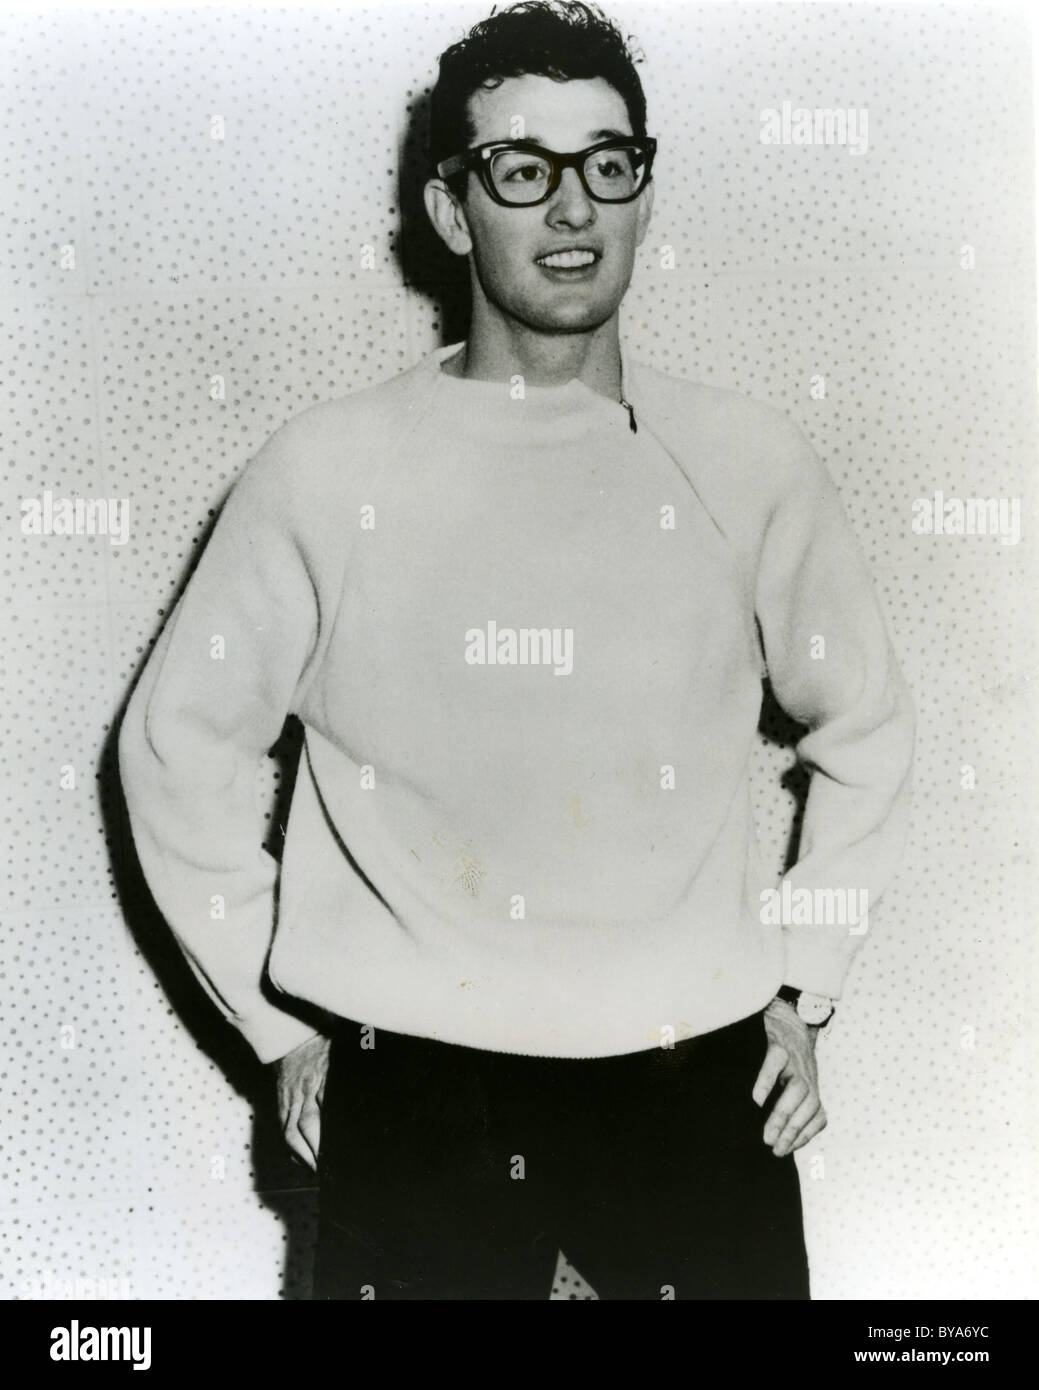 Buddy holly death photo White Spots on Lips, Fordyce, Small, Inside of, Sides